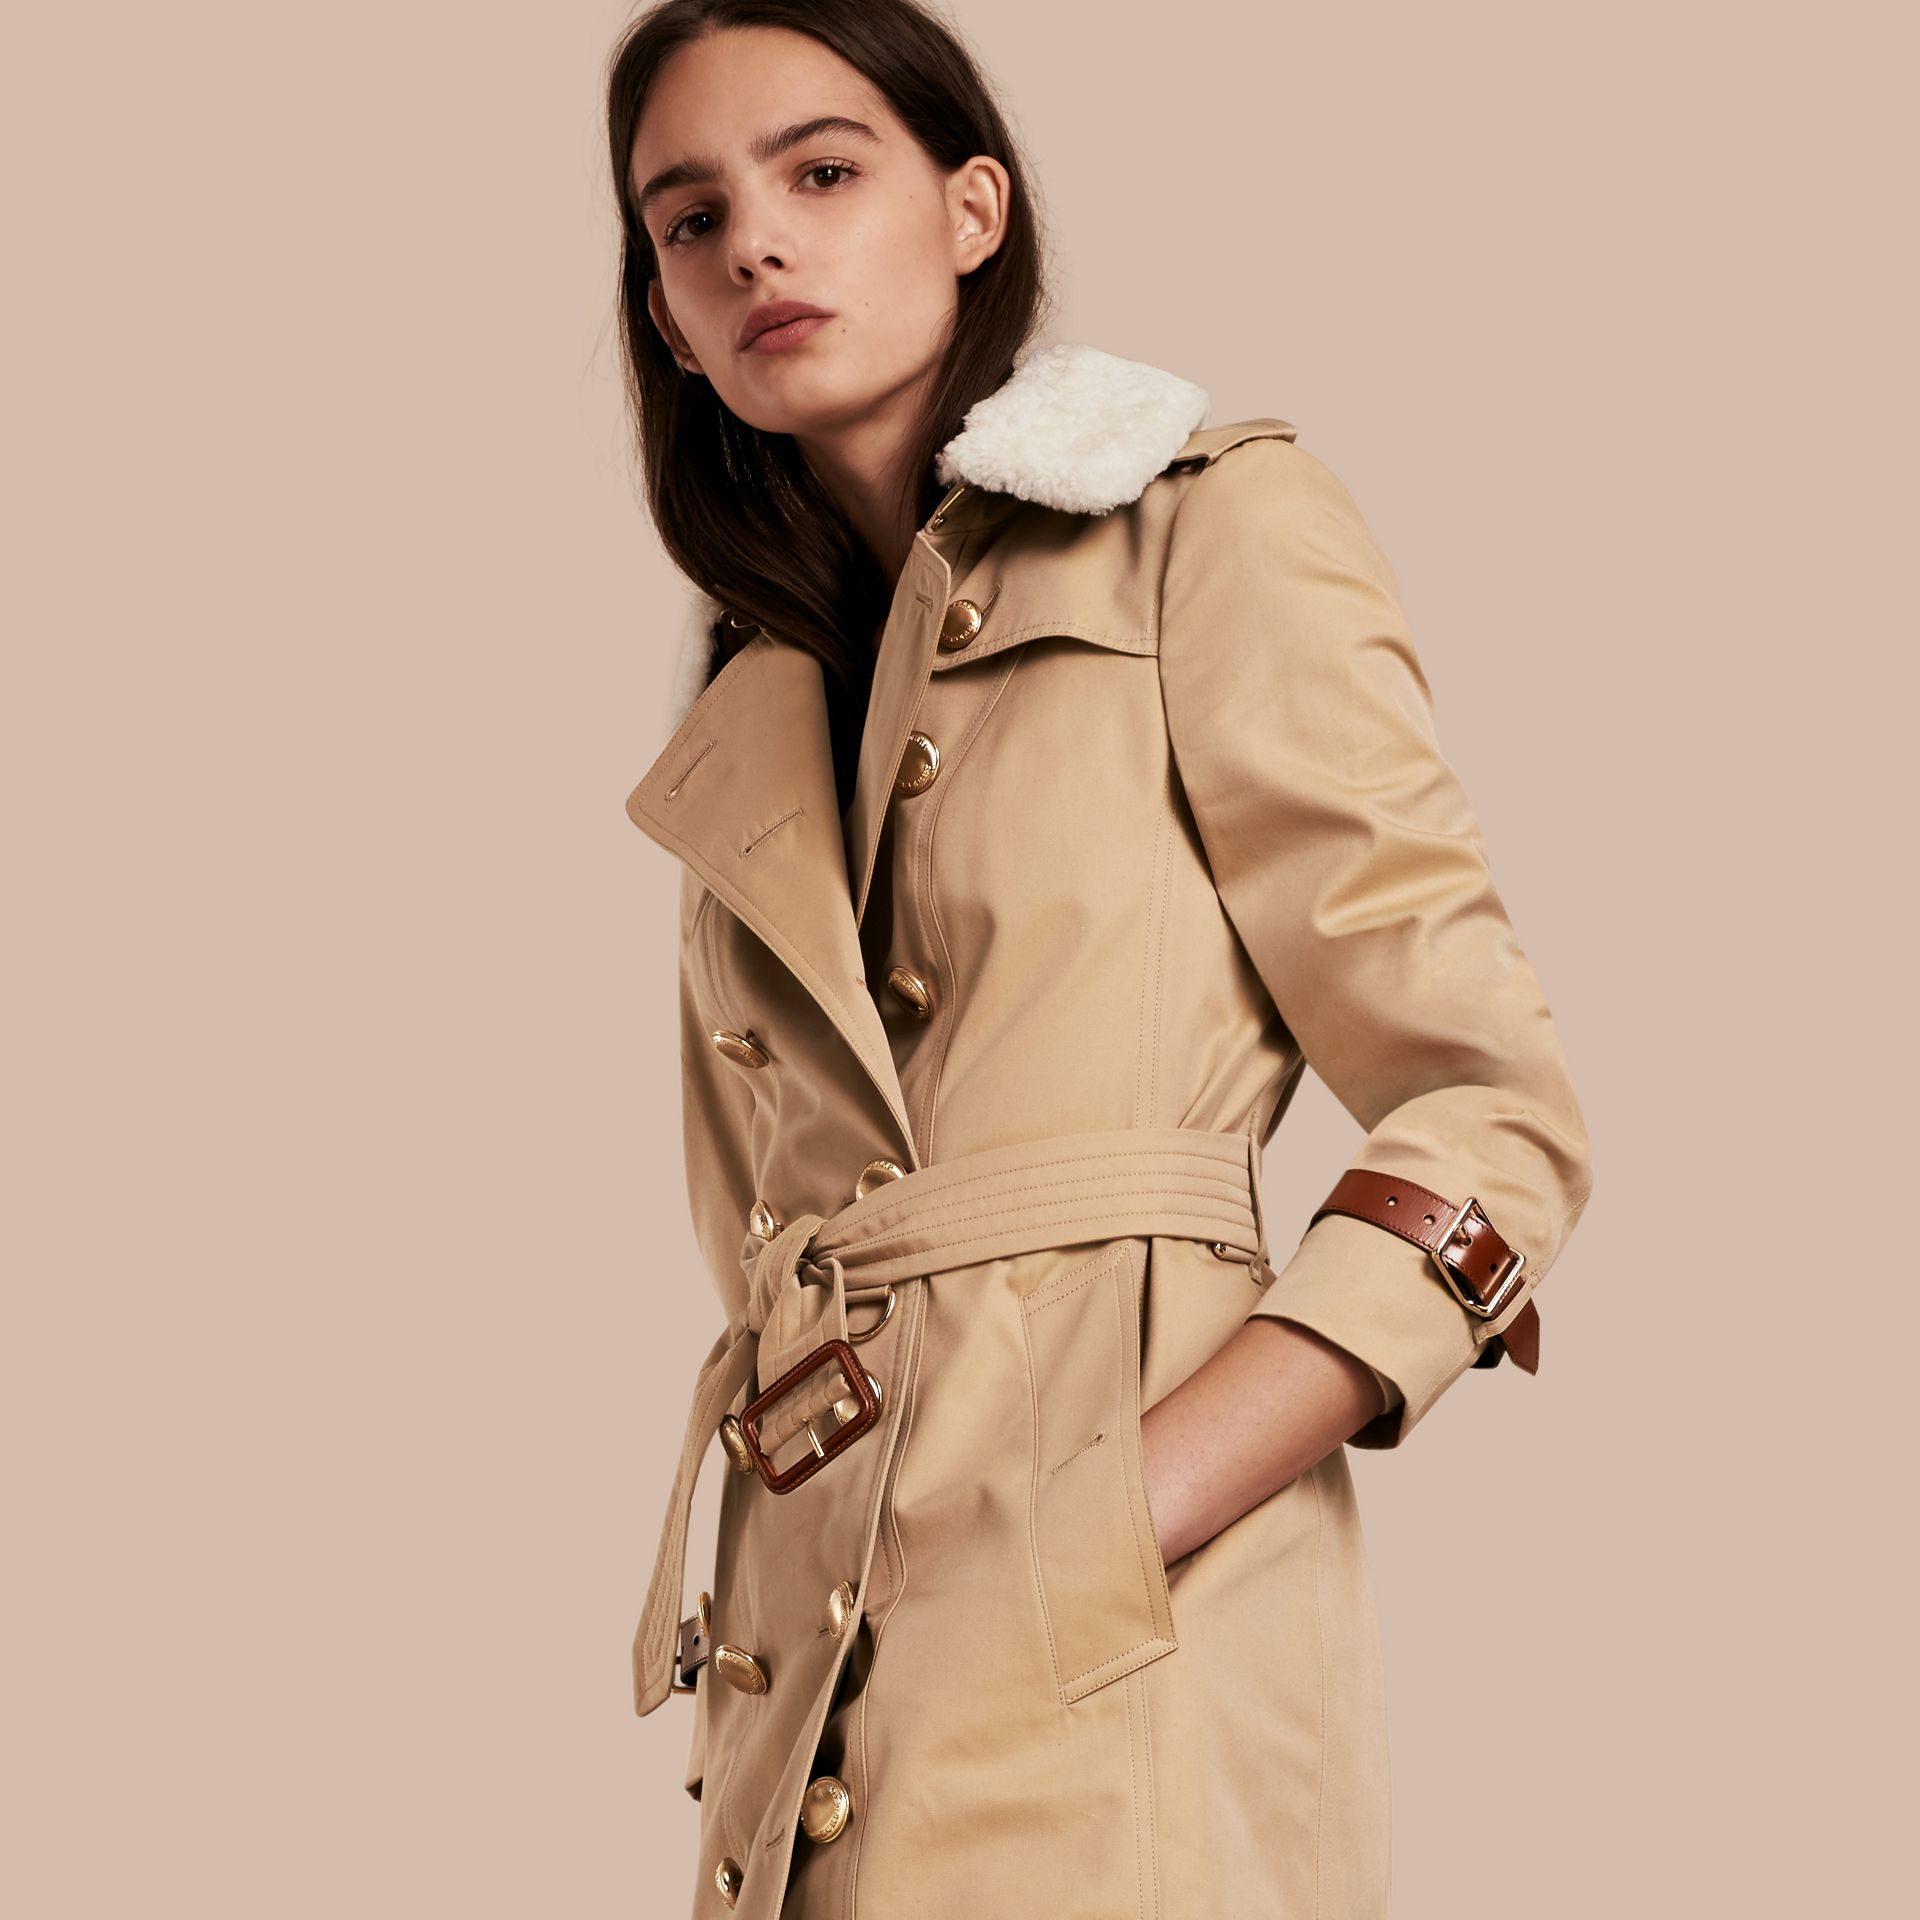 Honey Leather Trim Trench Coat with Detachable Shearling Collar - gallery image 1